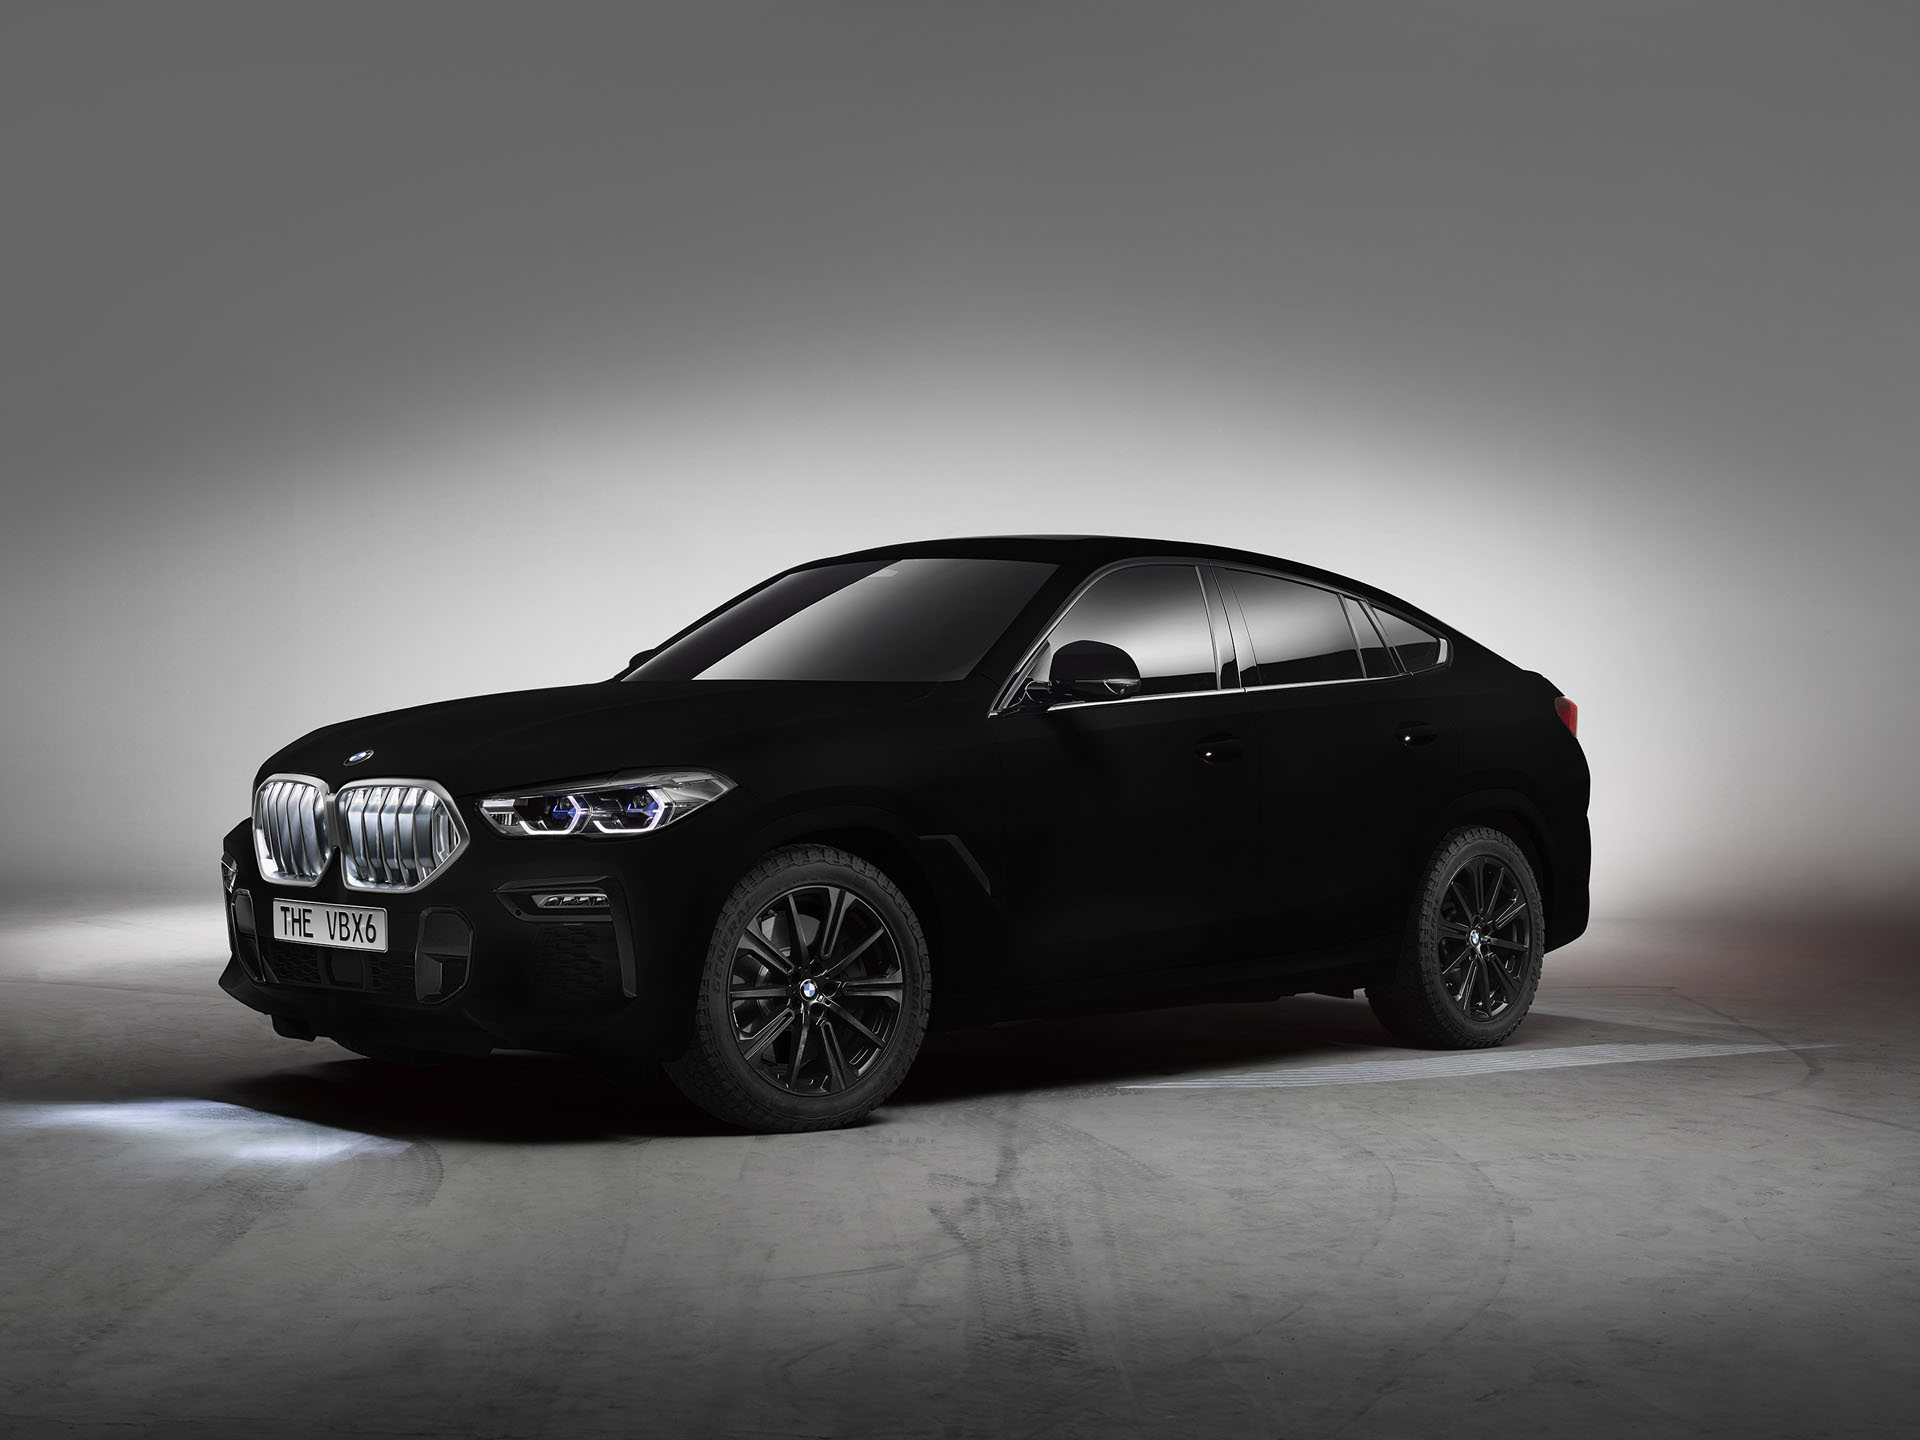 This 2020 BMW X6 is painted in the world's blackest black